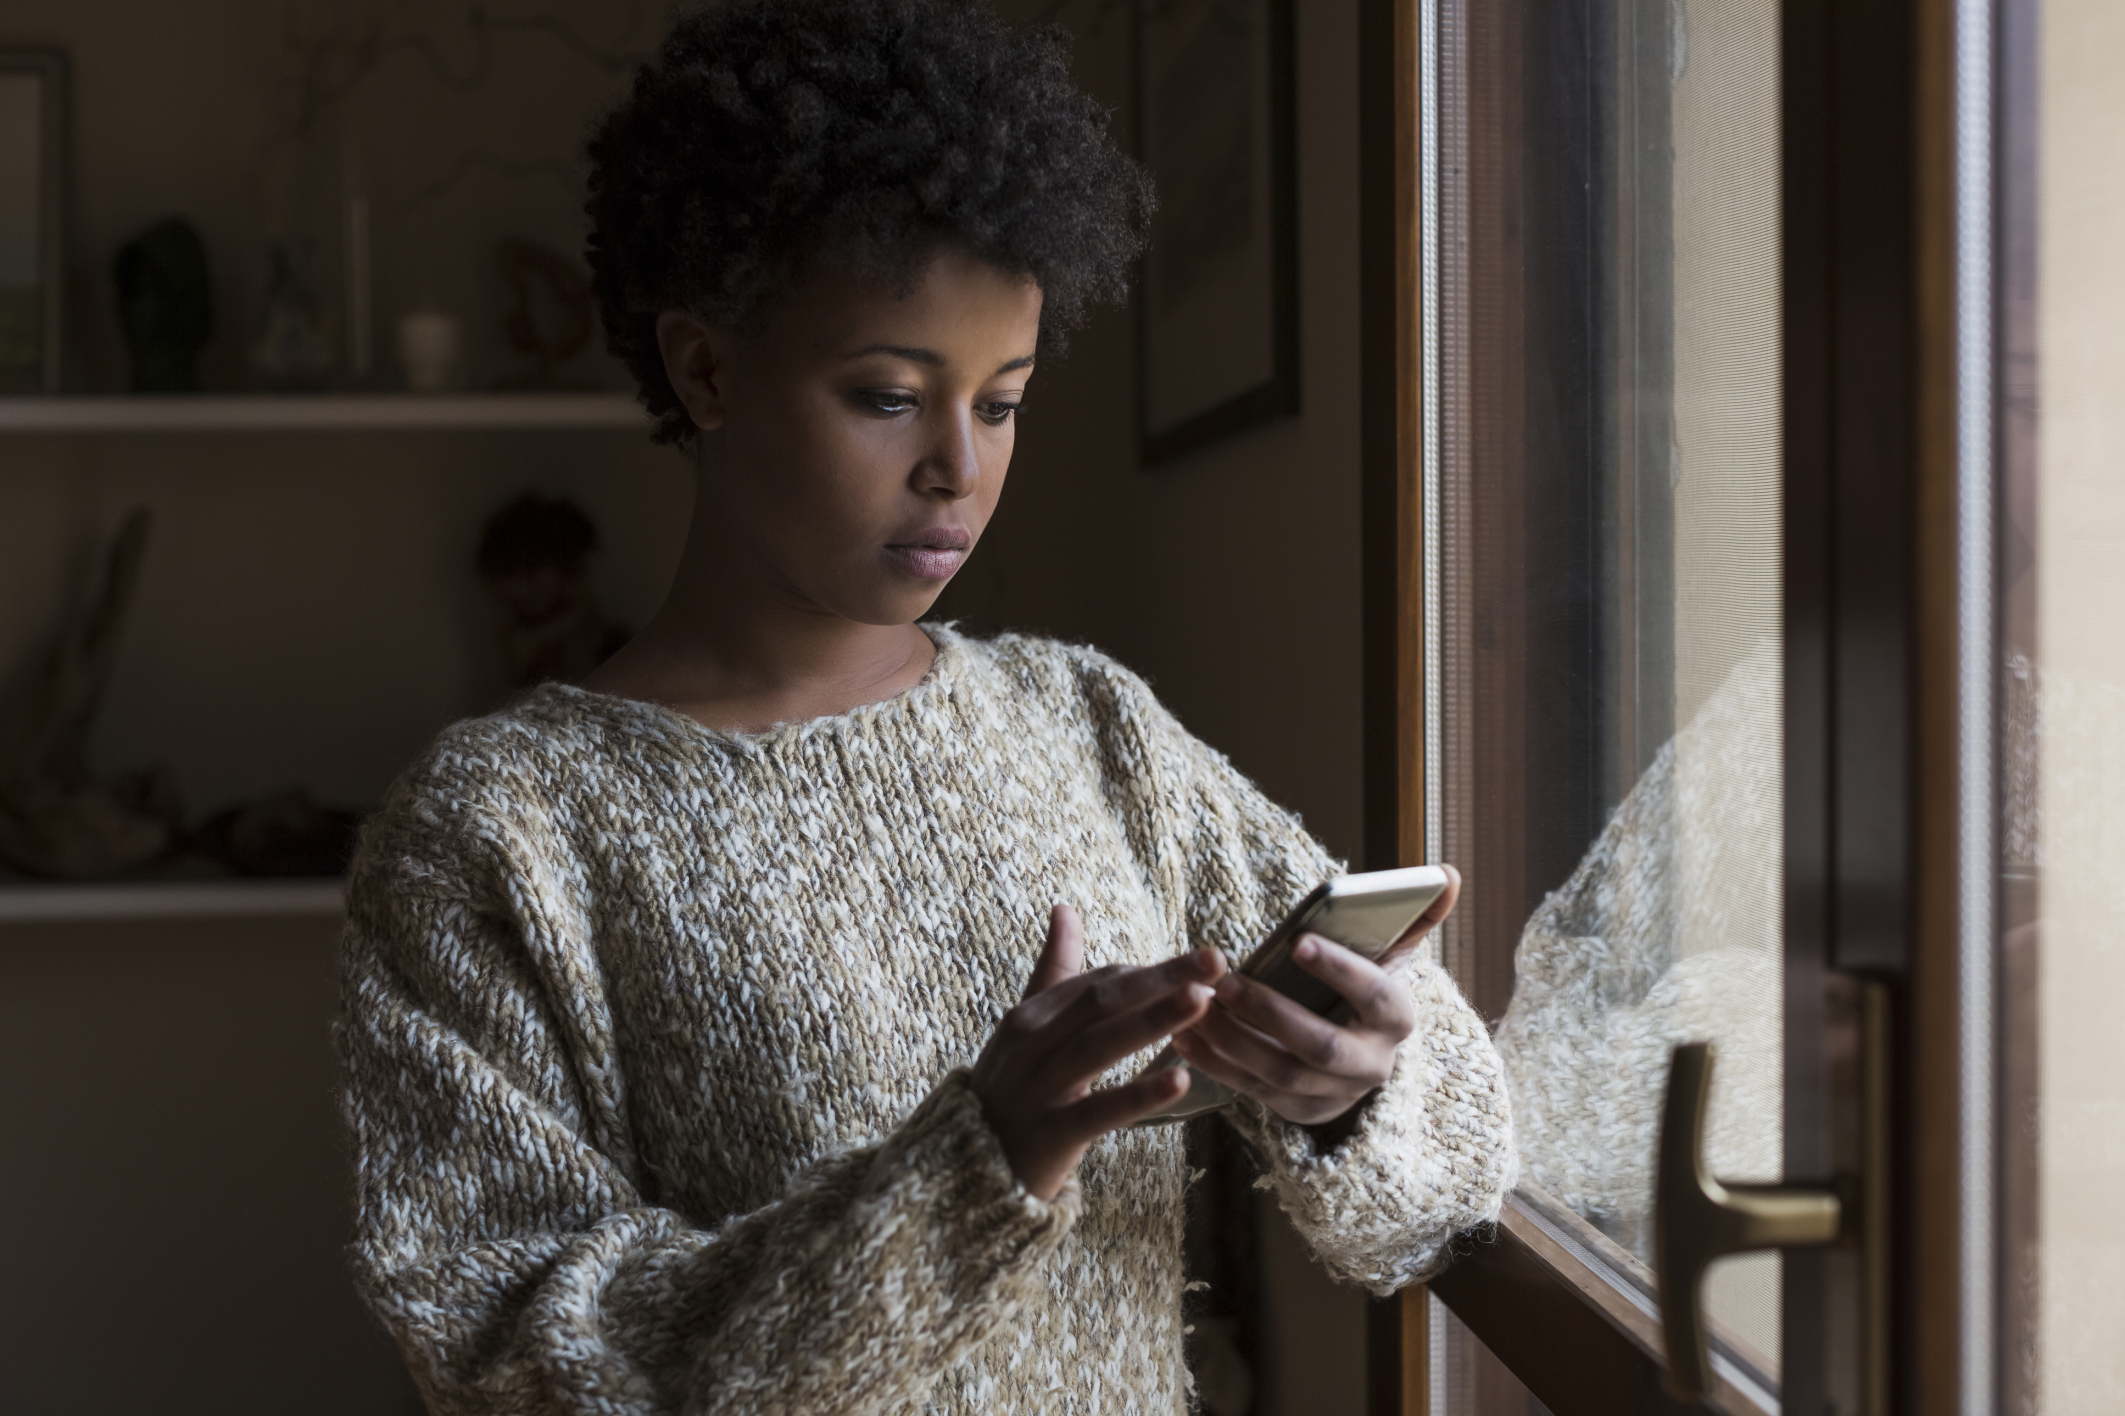 Young woman at the window looking at smartphone